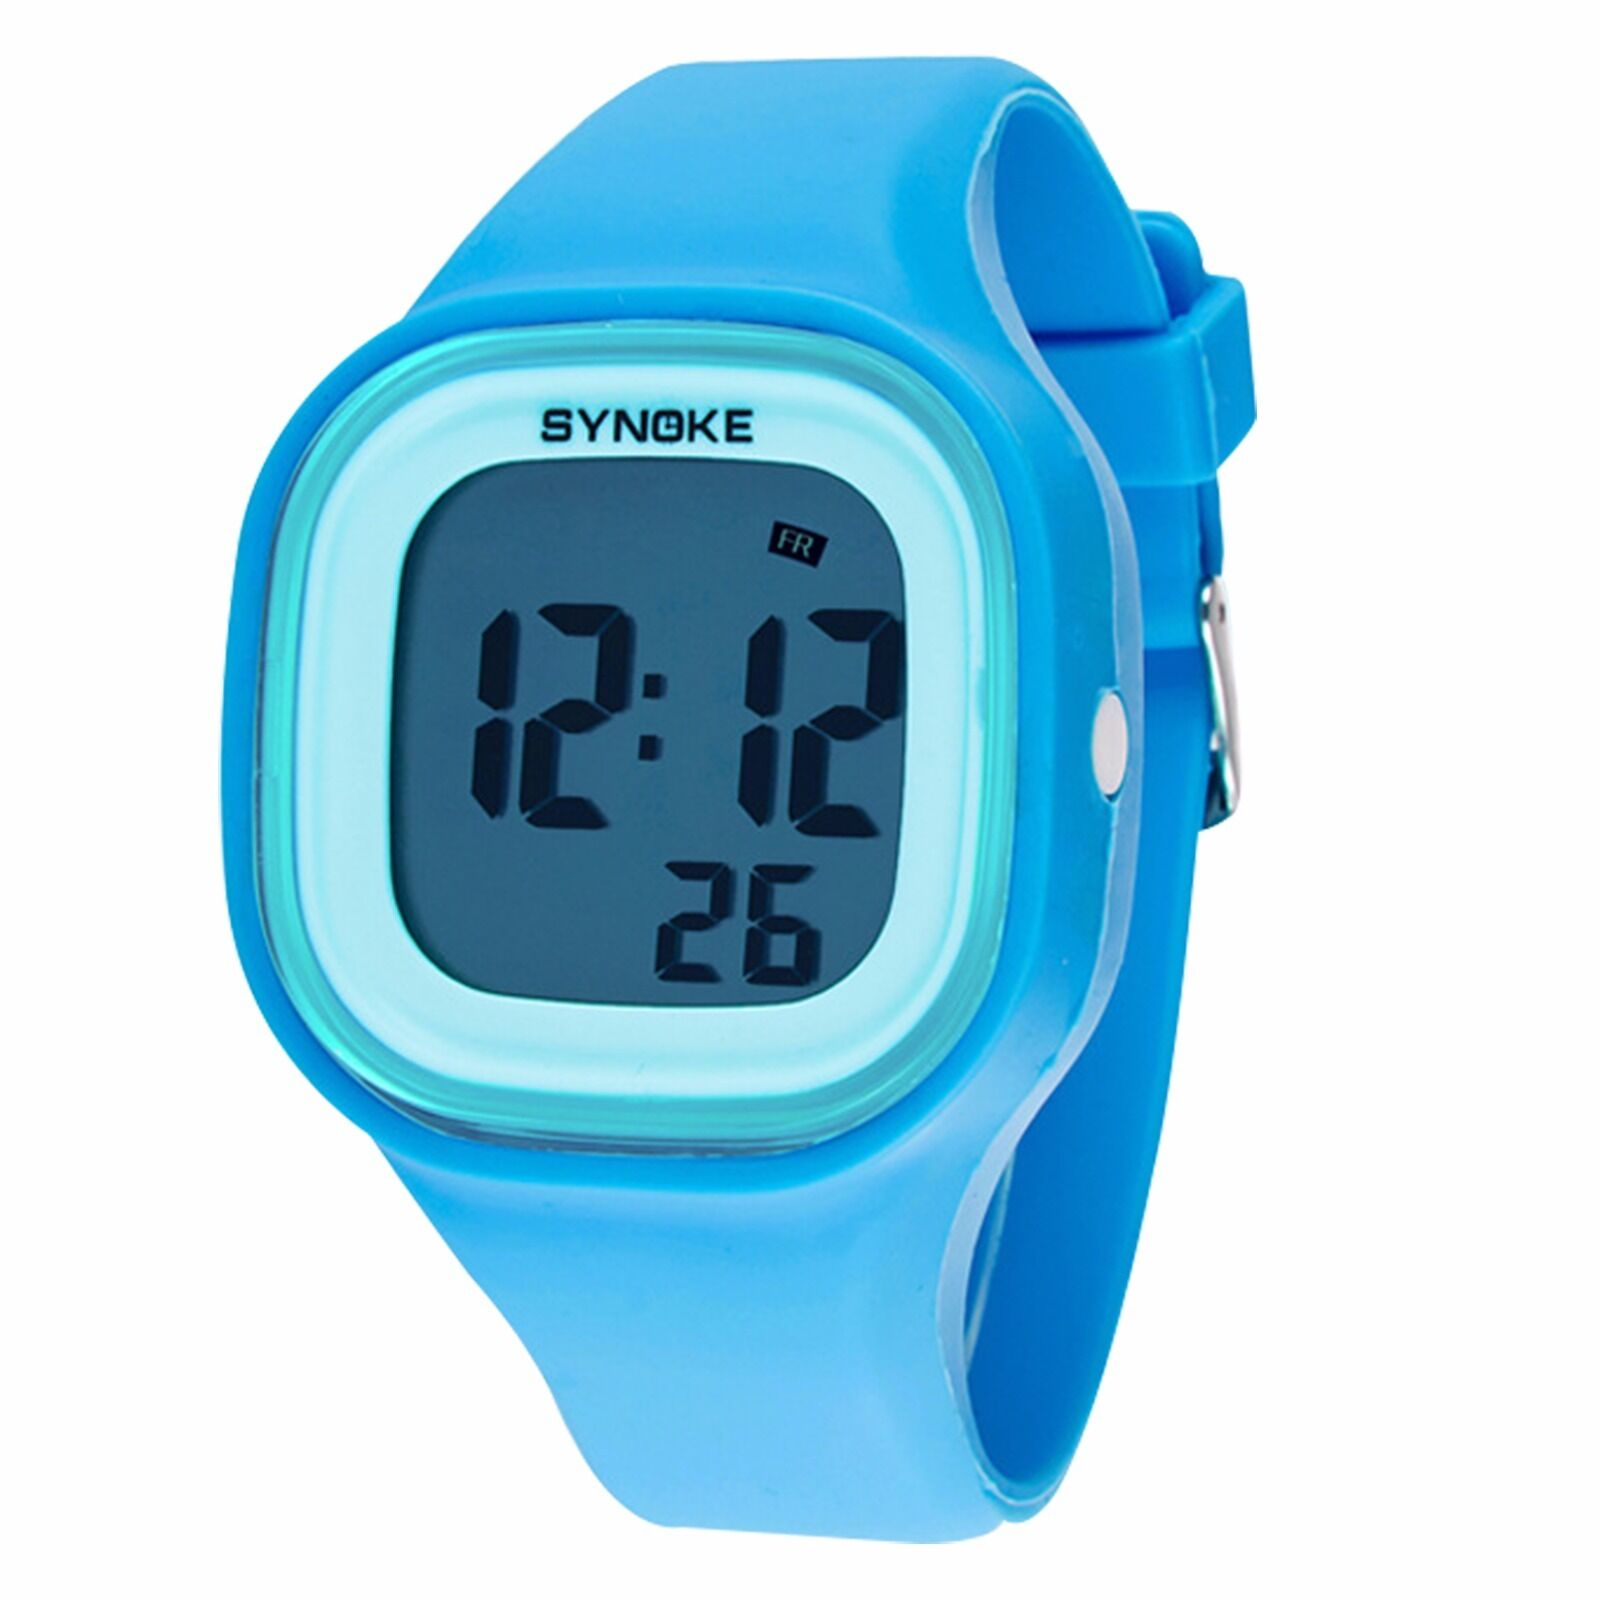 Synoke silicone led light digital waterproof sports kids girl boy wrist watches ebay for Watches for kids